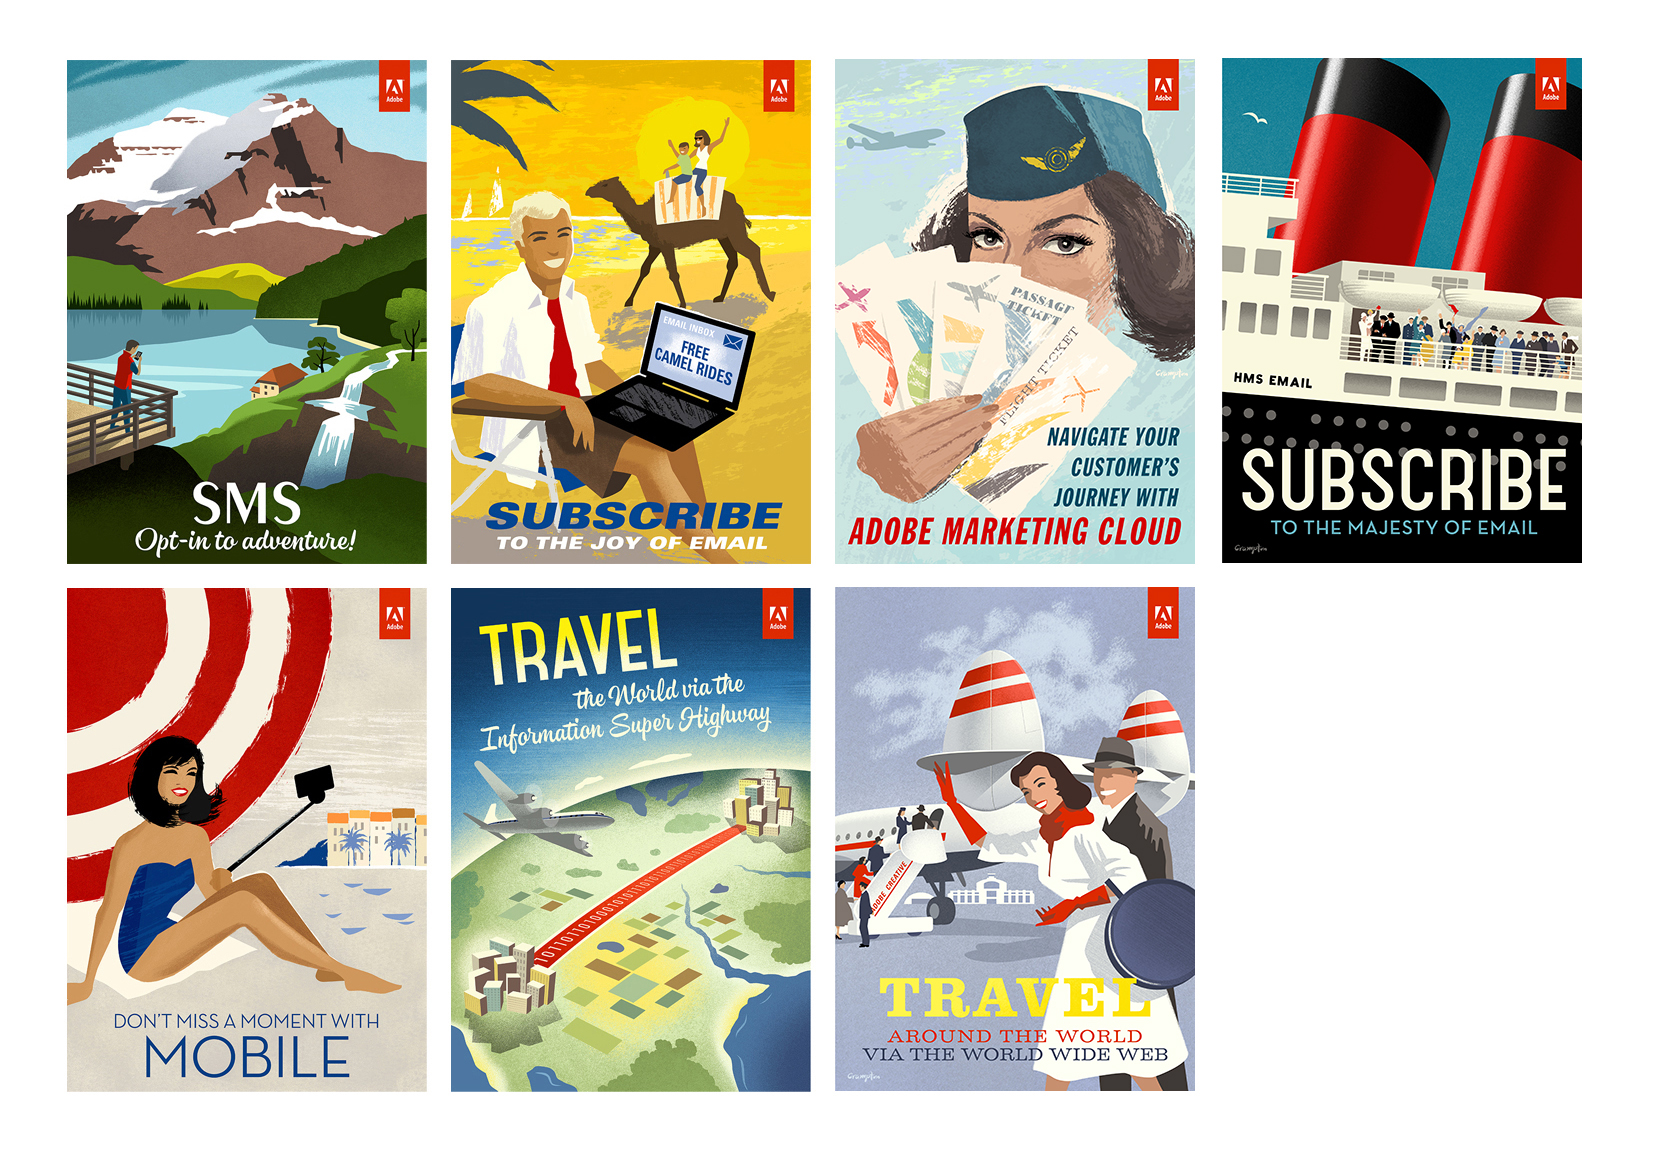 Adobe cards illustrations by Michael Crampton